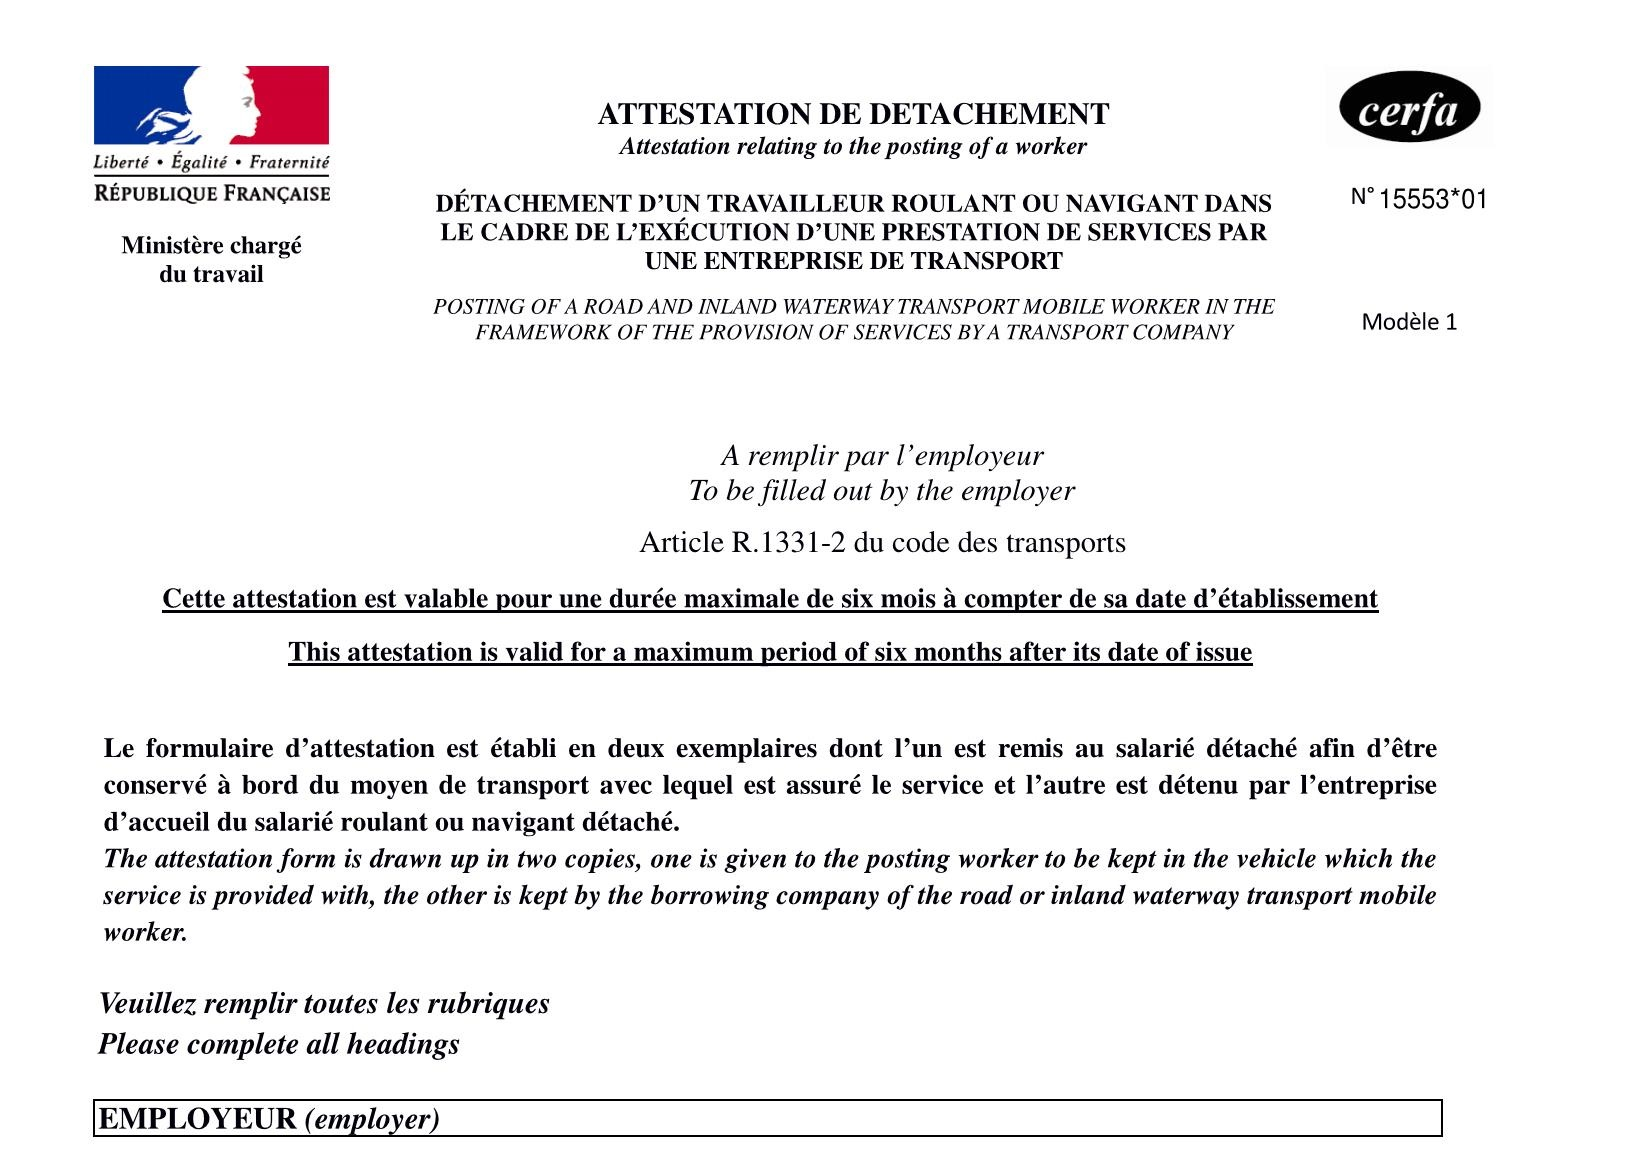 Certificate of secondment and representation in France